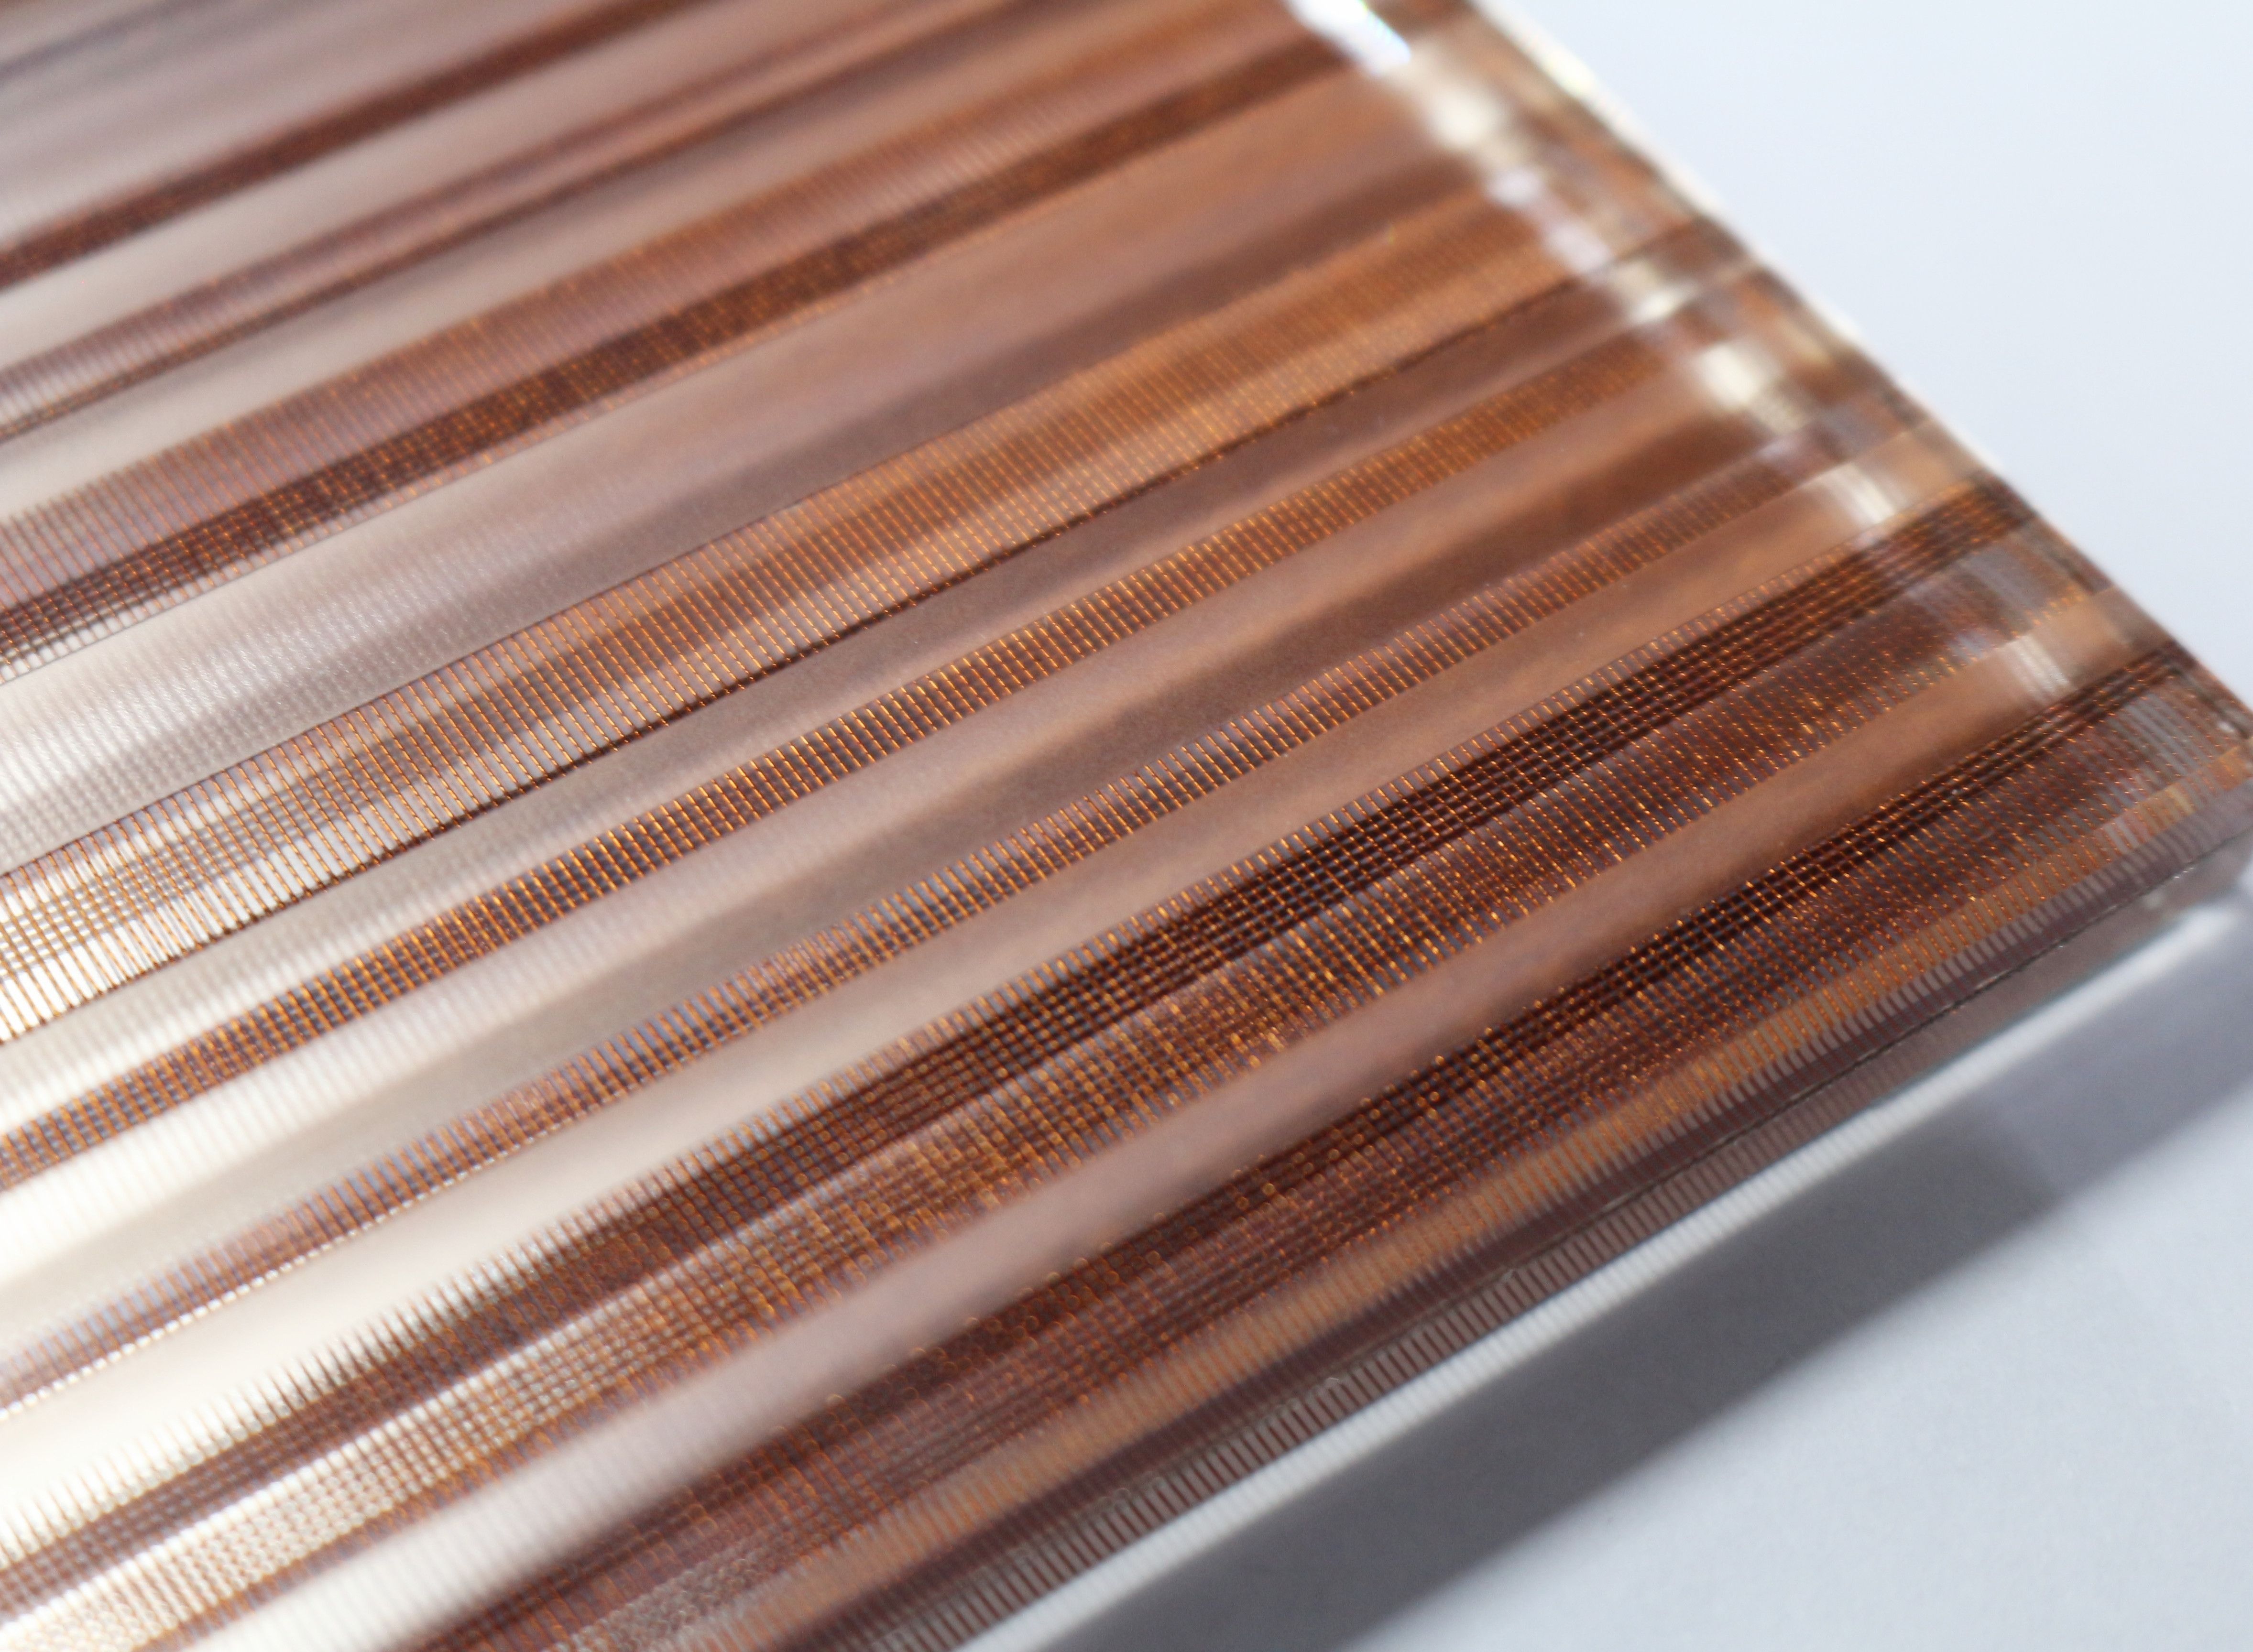 Fabric Laminated Glass Mixing The Customize Texture Pattern On Surface Creating A Metallic Surface Finish Fabriclaminate Laminated Glass Glass Texture Glass